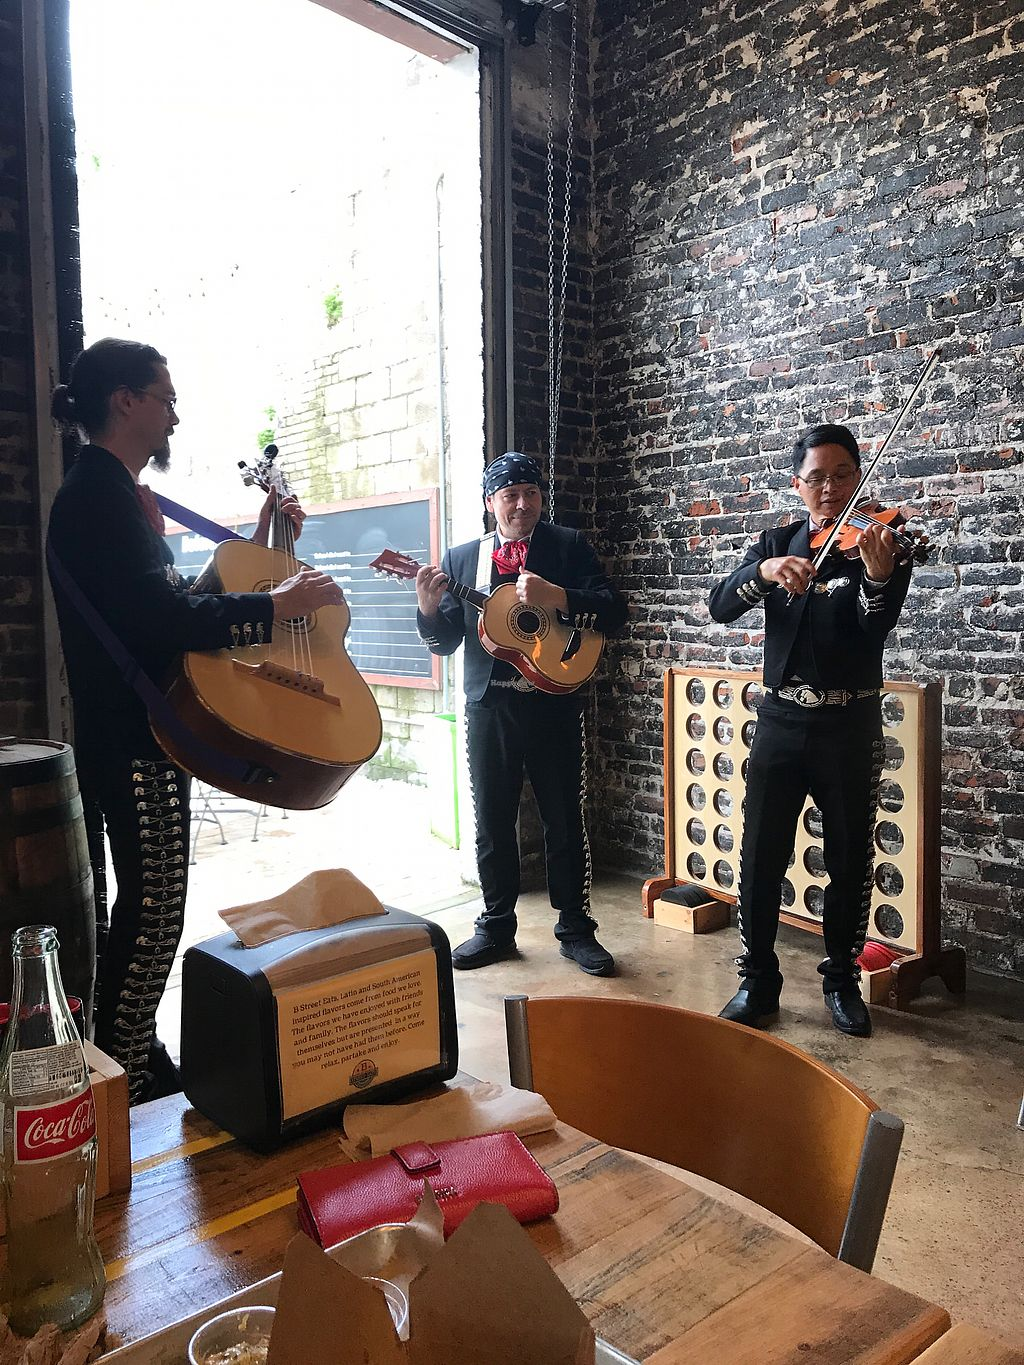 """Photo of B Street Eats  by <a href=""""/members/profile/BlakeAdele"""">BlakeAdele</a> <br/>Mariachi  <br/> April 23, 2018  - <a href='/contact/abuse/image/93111/390178'>Report</a>"""